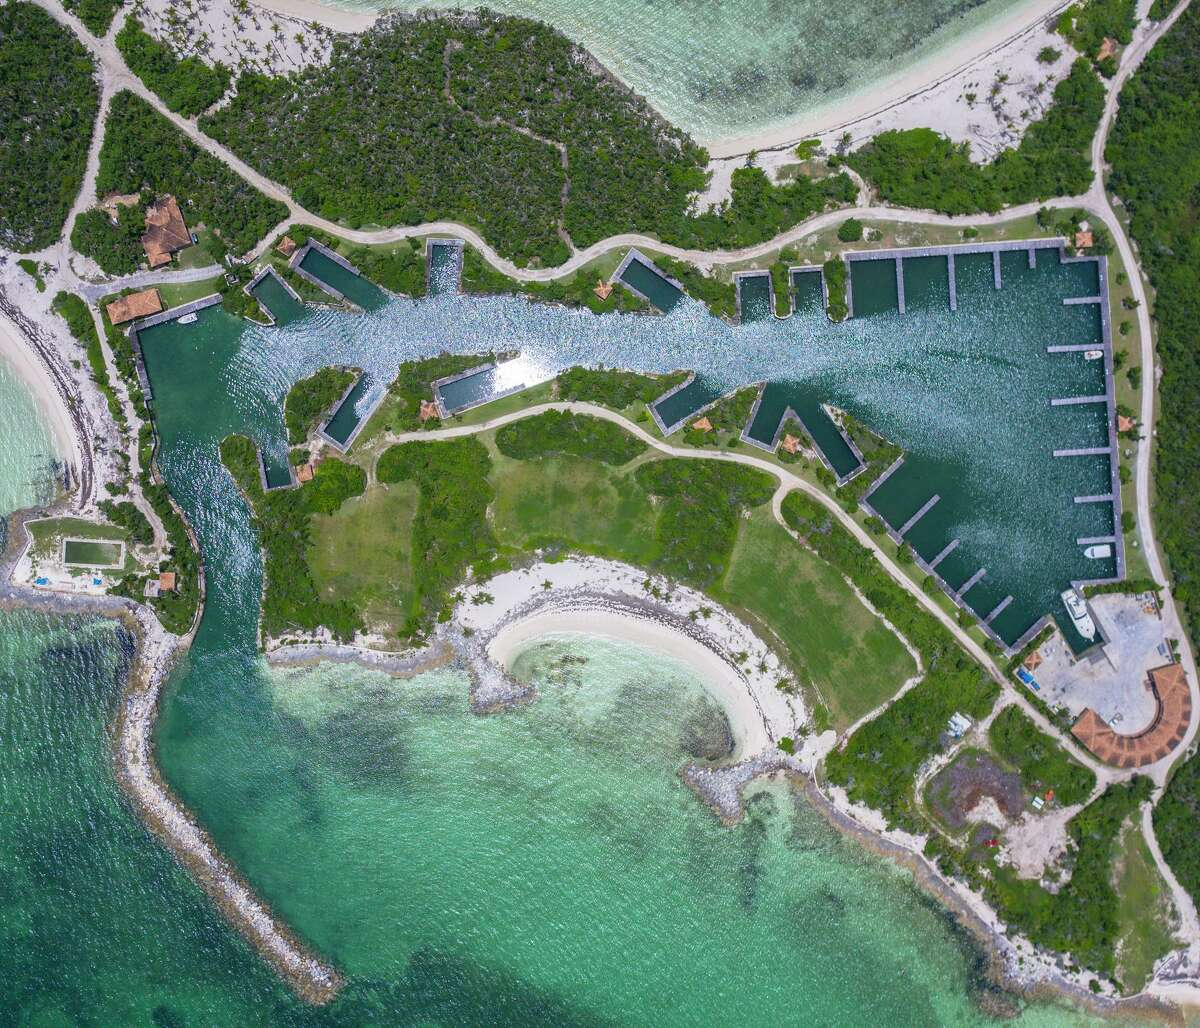 Montage Cay, a luxury resort that will be completed in 2023, will feature seven white-sand beaches and a 46-slip marina.